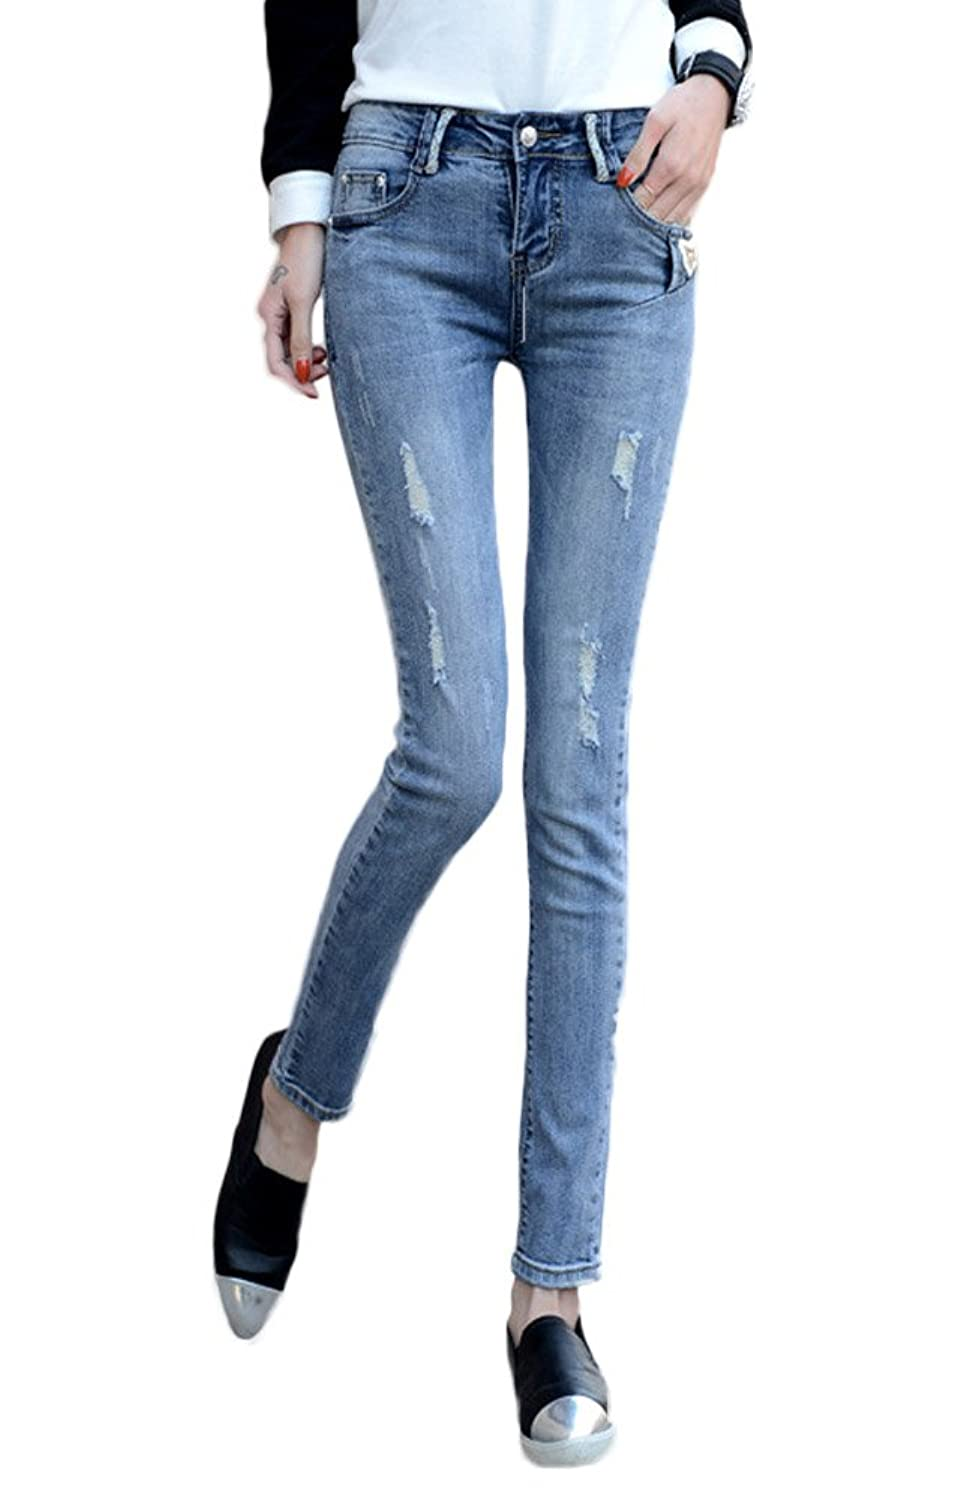 Tidecloth Women's Slim Stretchy Skinny Leg Mid Rise Ripped Denim Jeans Blue 27